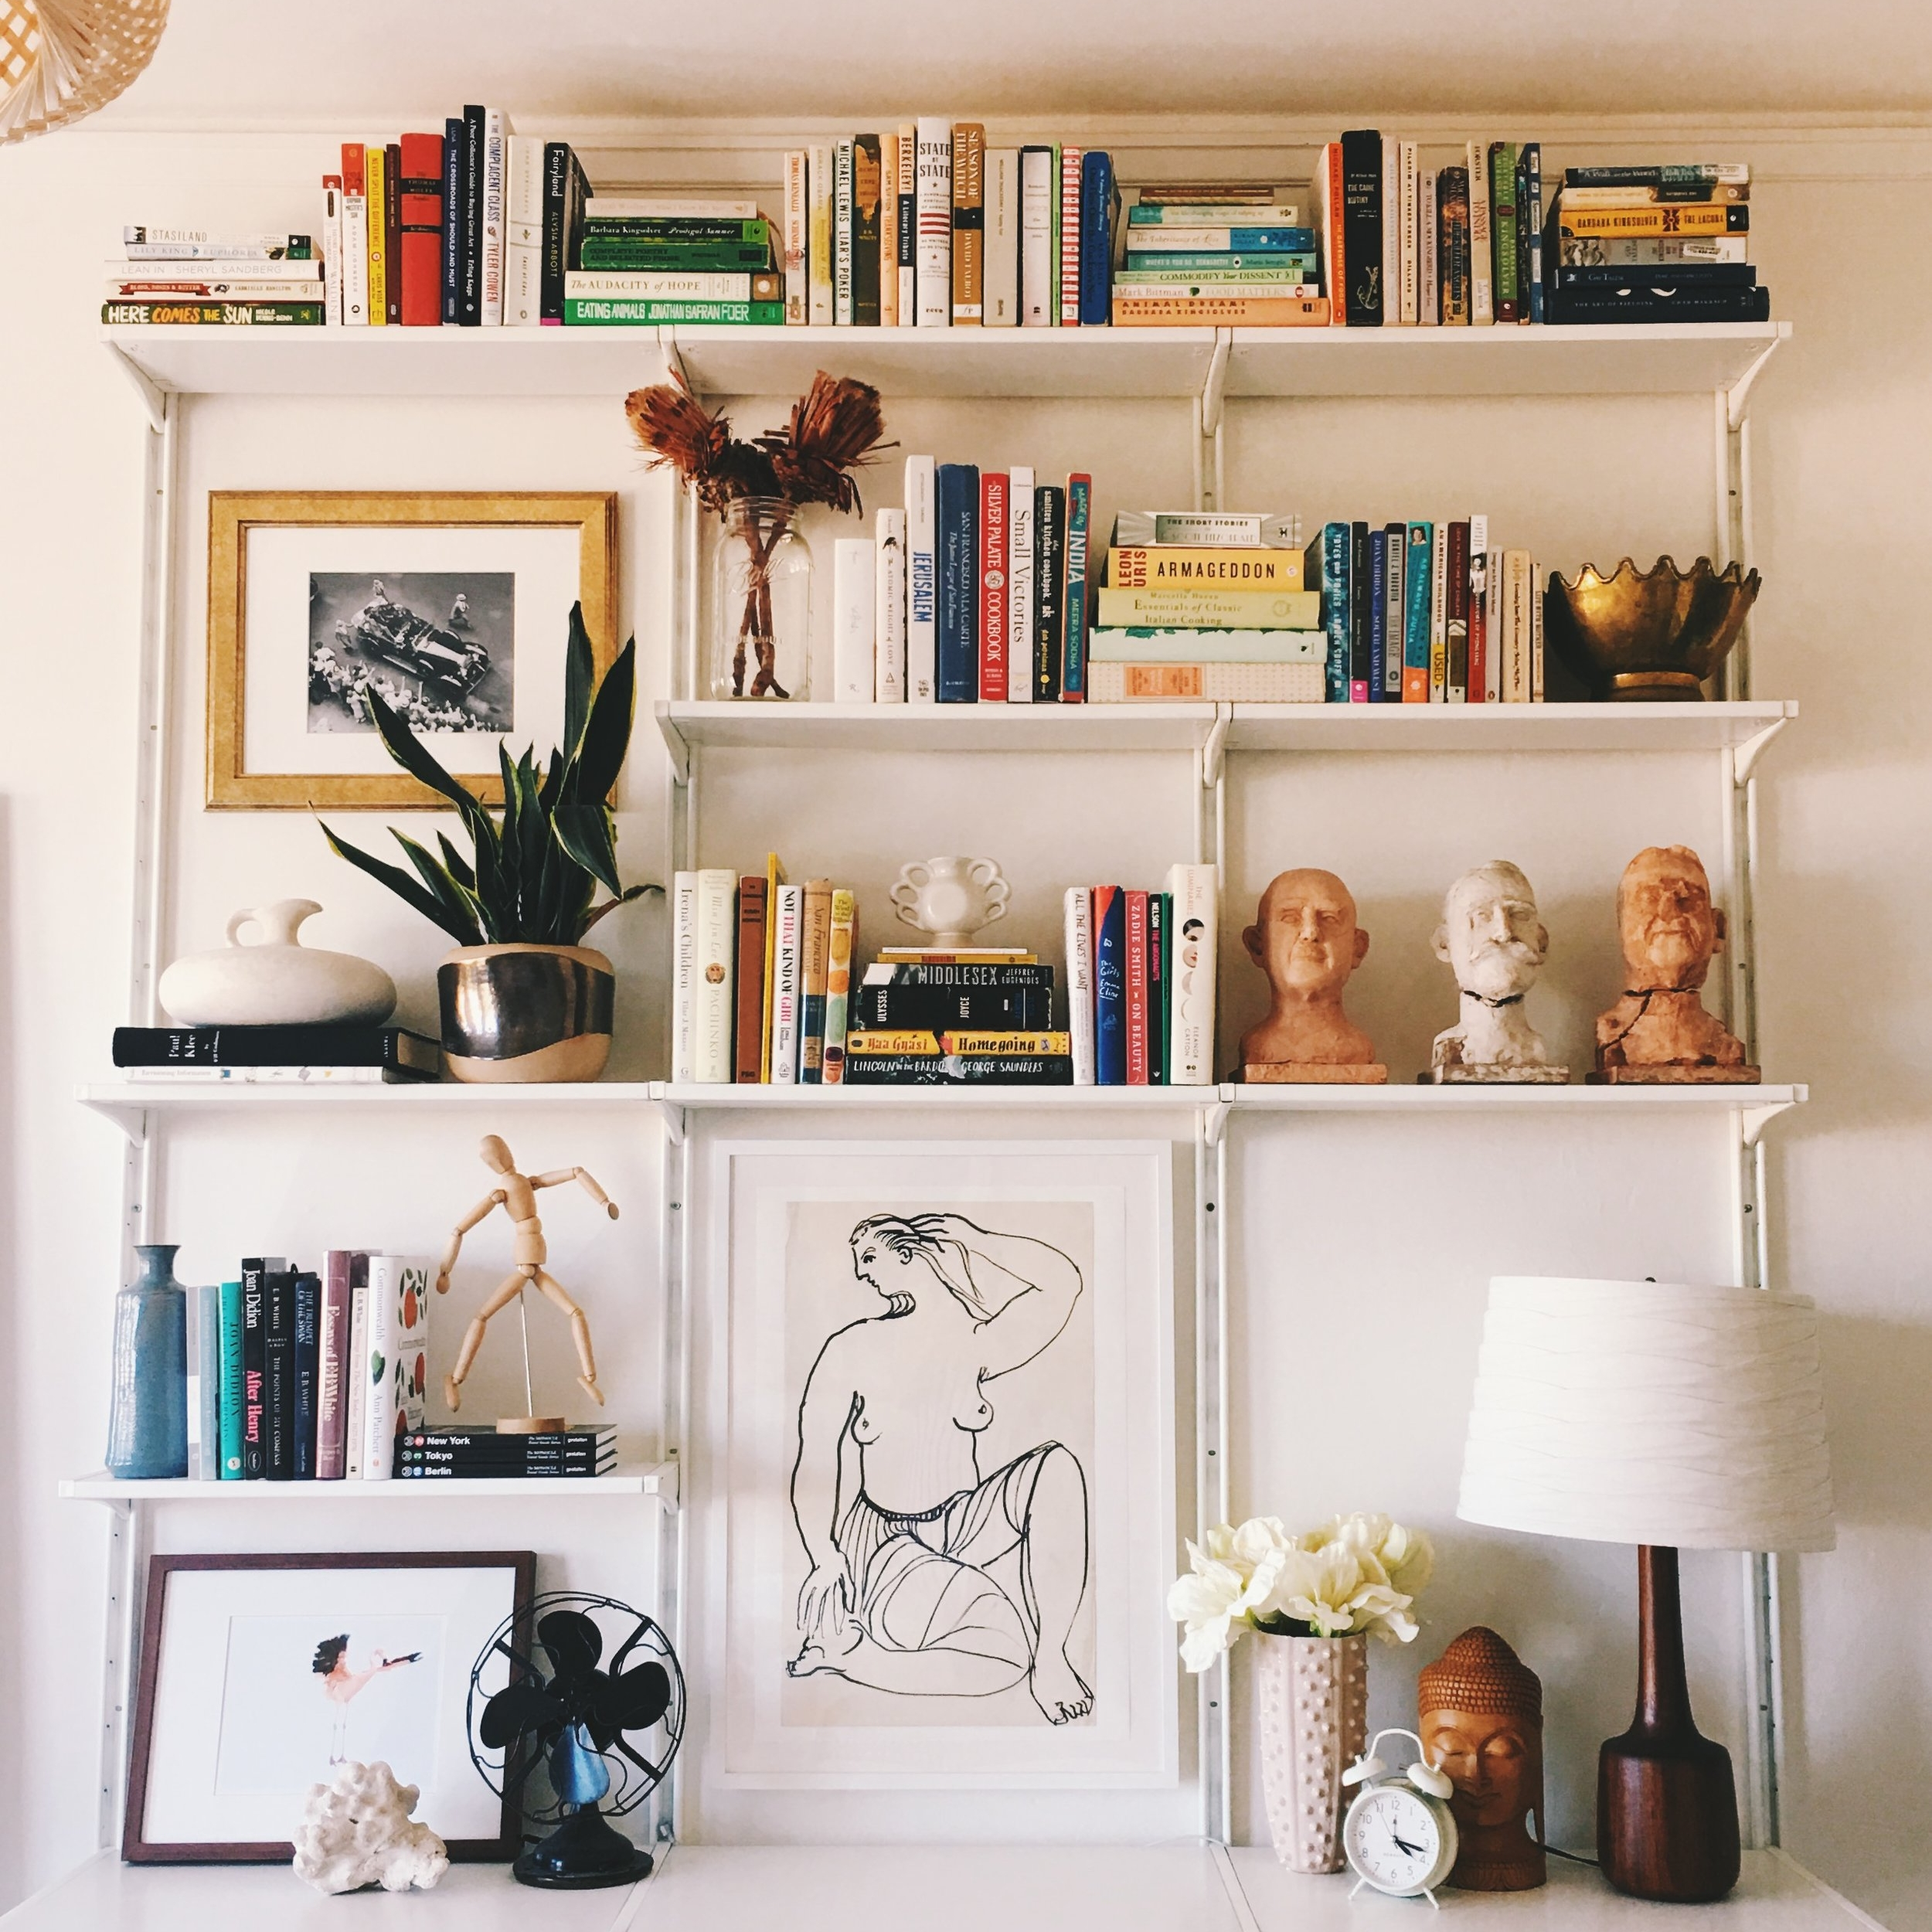 How I Designed Wall Mounted Shelving With